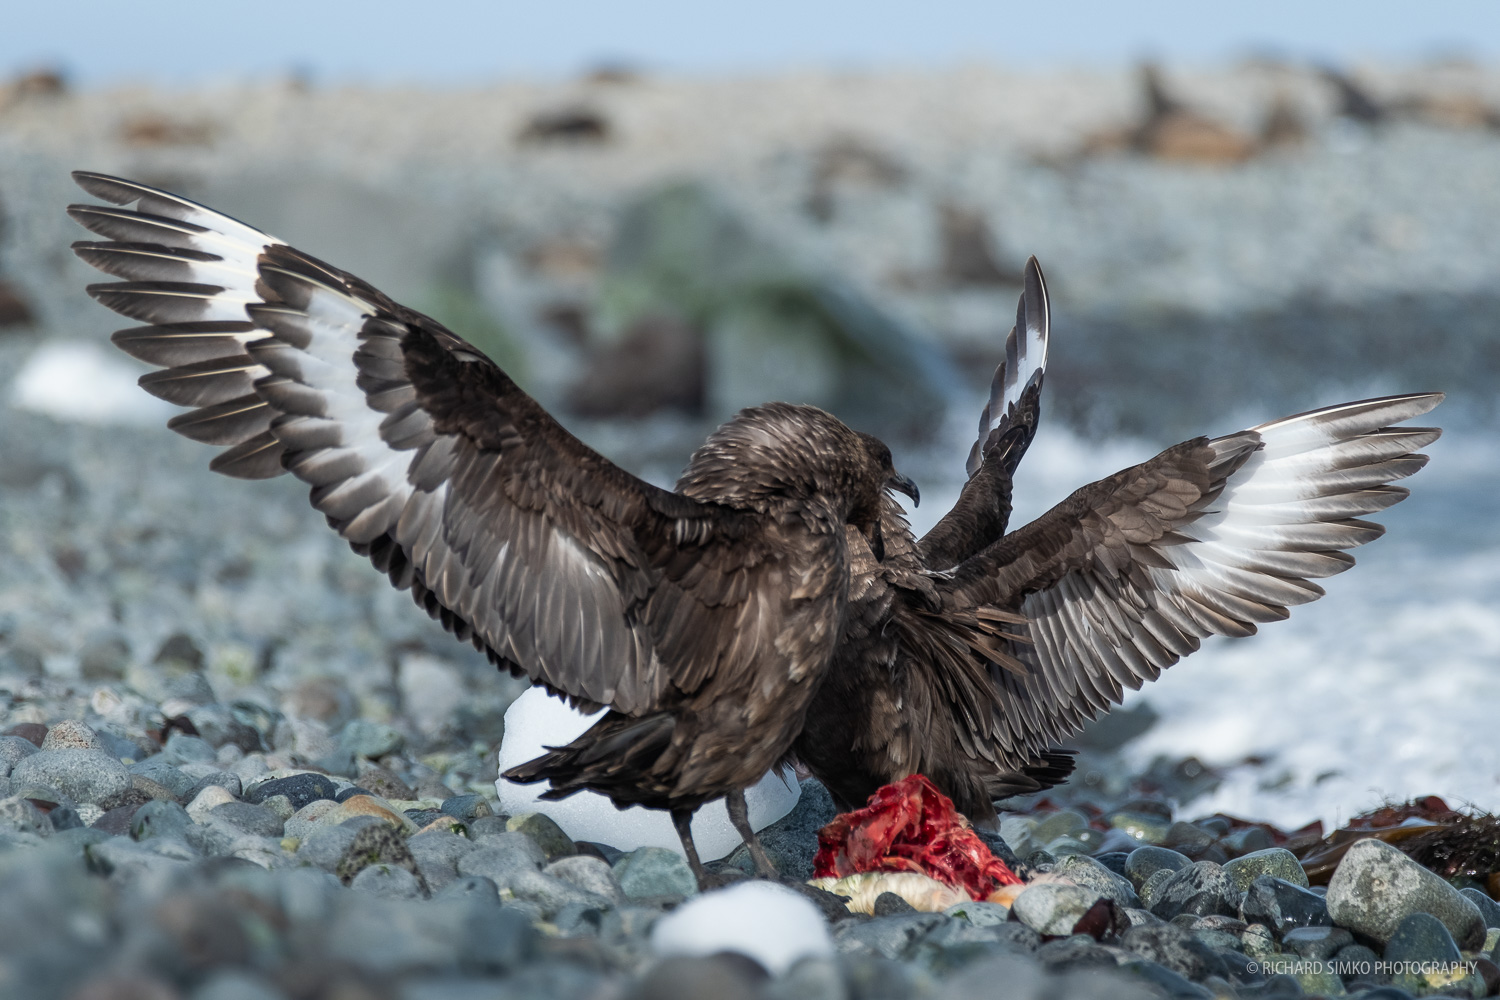 A pair of skuas feed on a dead penguin, fighting to get the best bite.